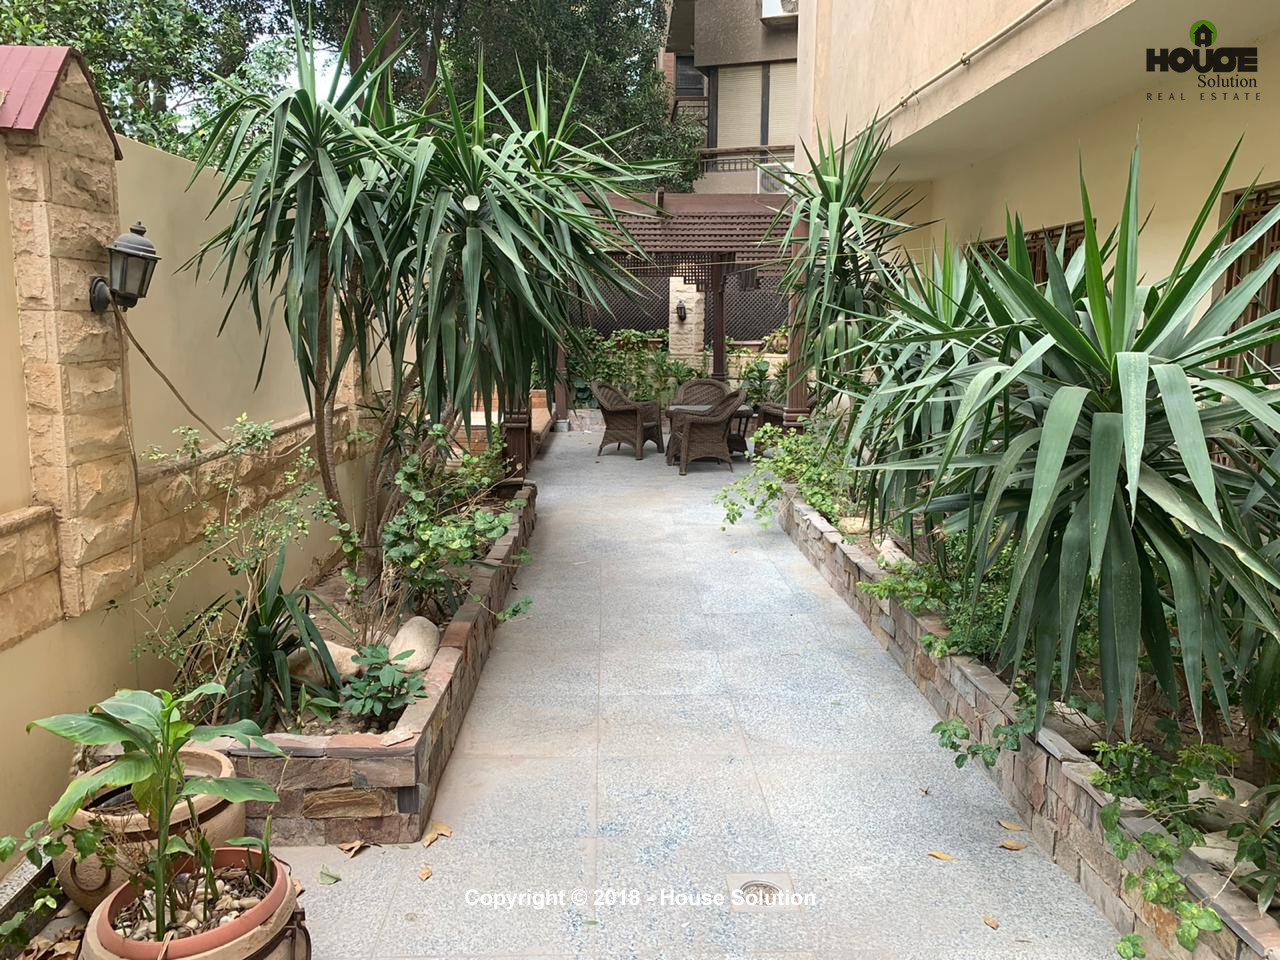 Ground Floors For Rent In Maadi Maadi Sarayat #3947 -4